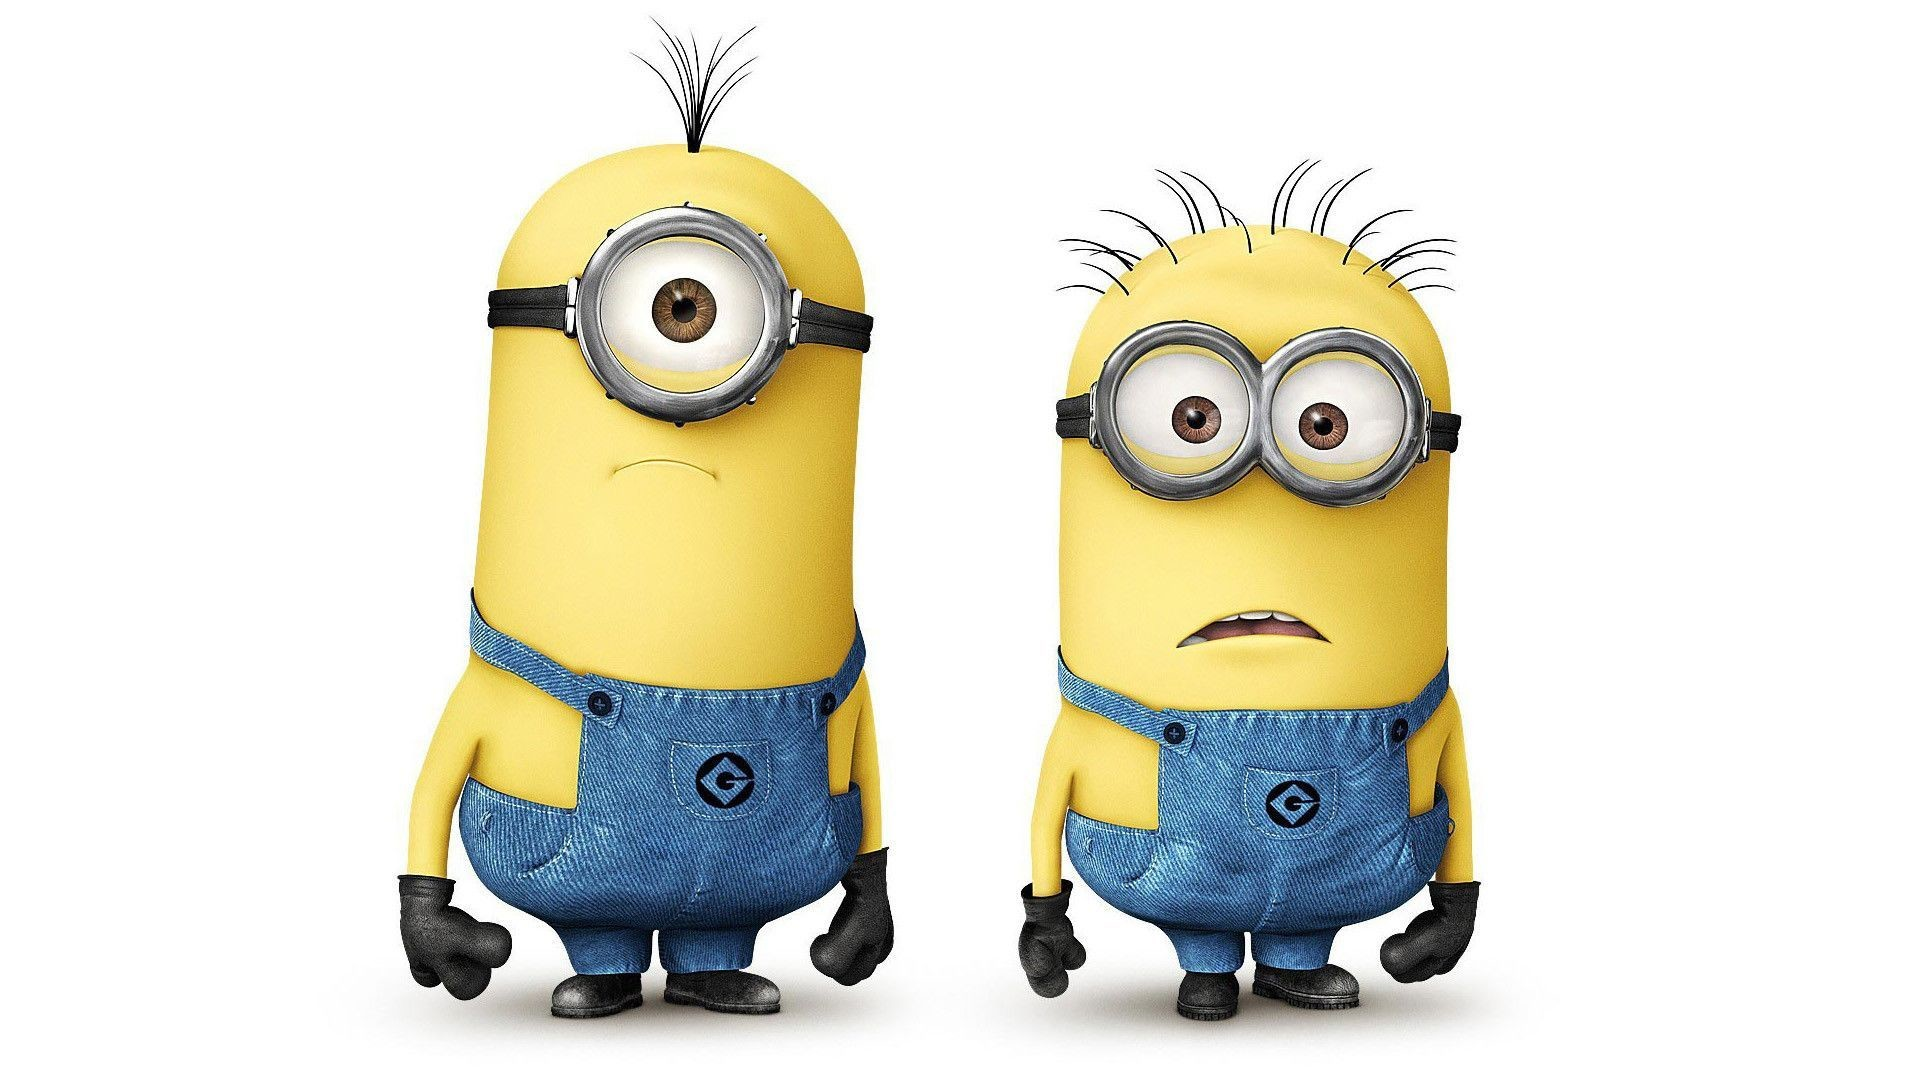 1920x1080 Best Images of Minions Minions HD Wallpapers Minions Whatsapp